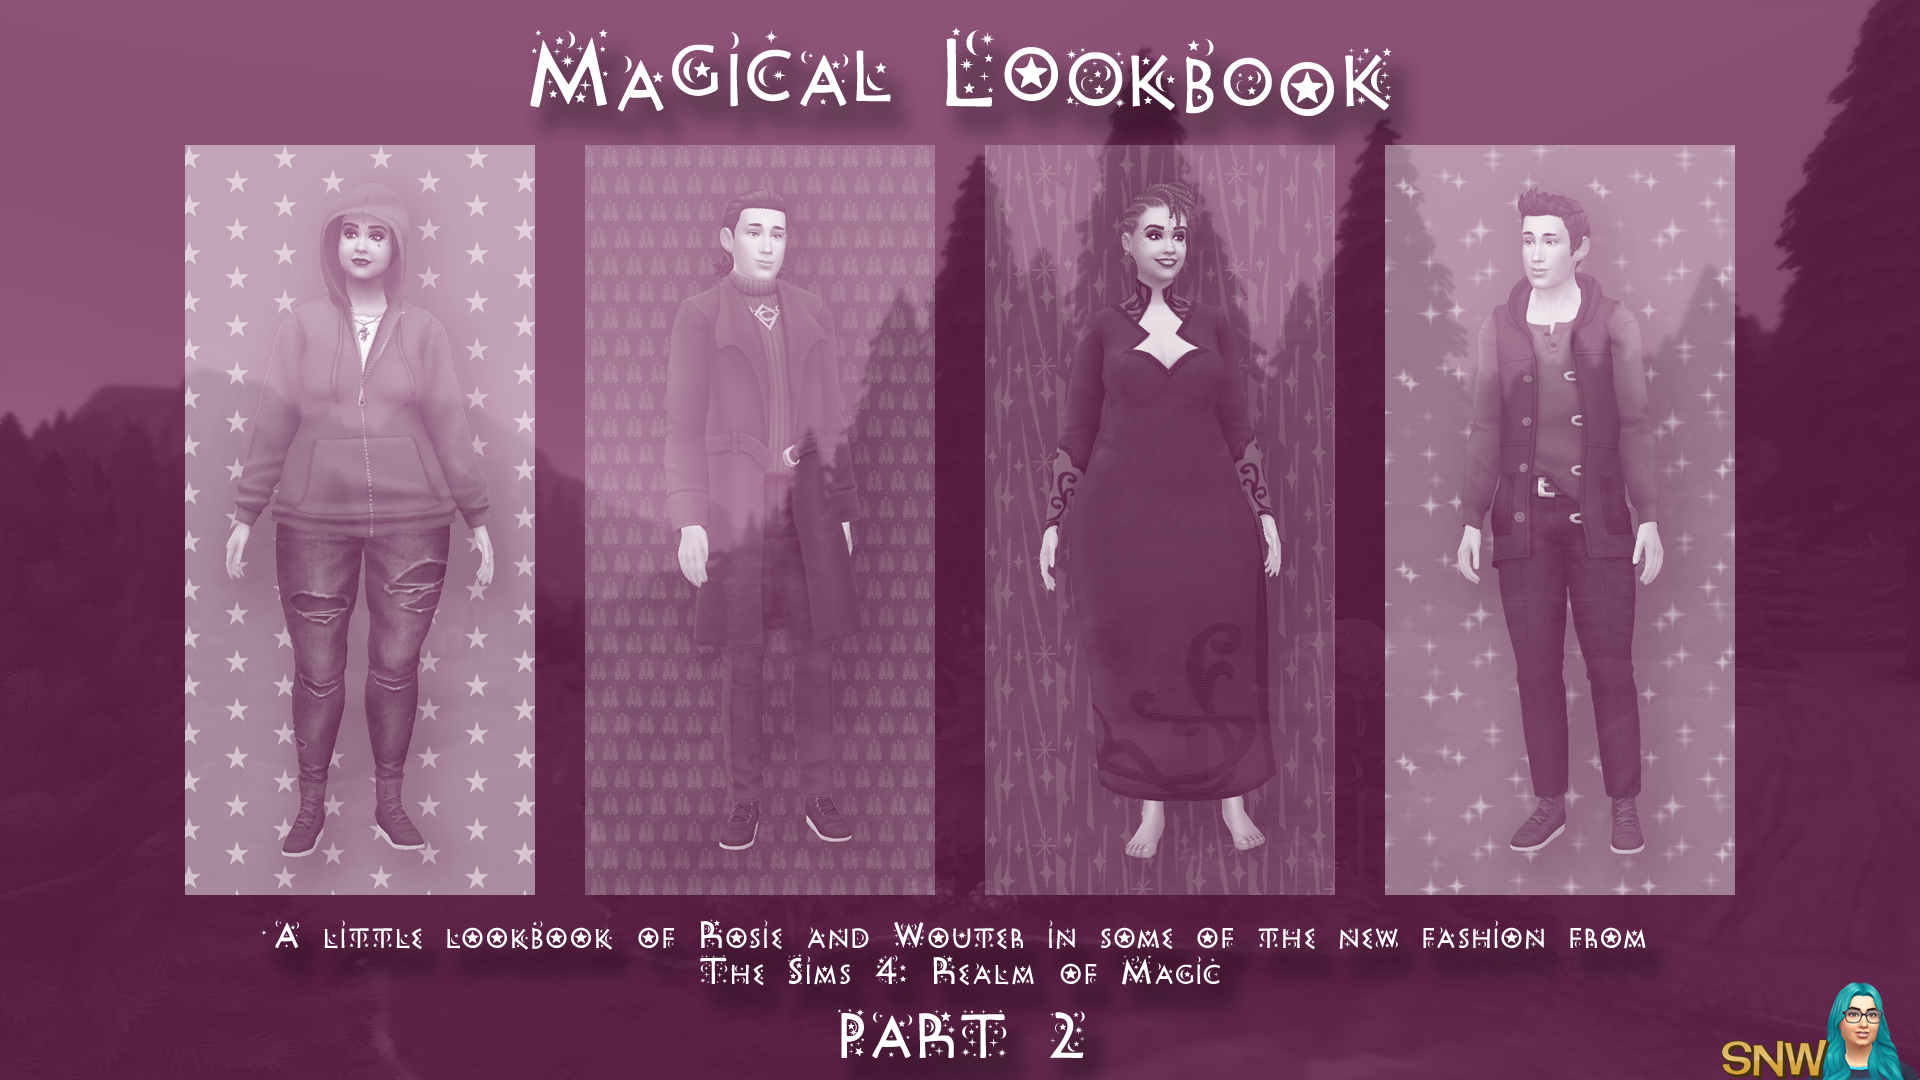 The Sims 4: Realm of Magic - A Little Lookbook by Rosie and Cheetah - Part 2